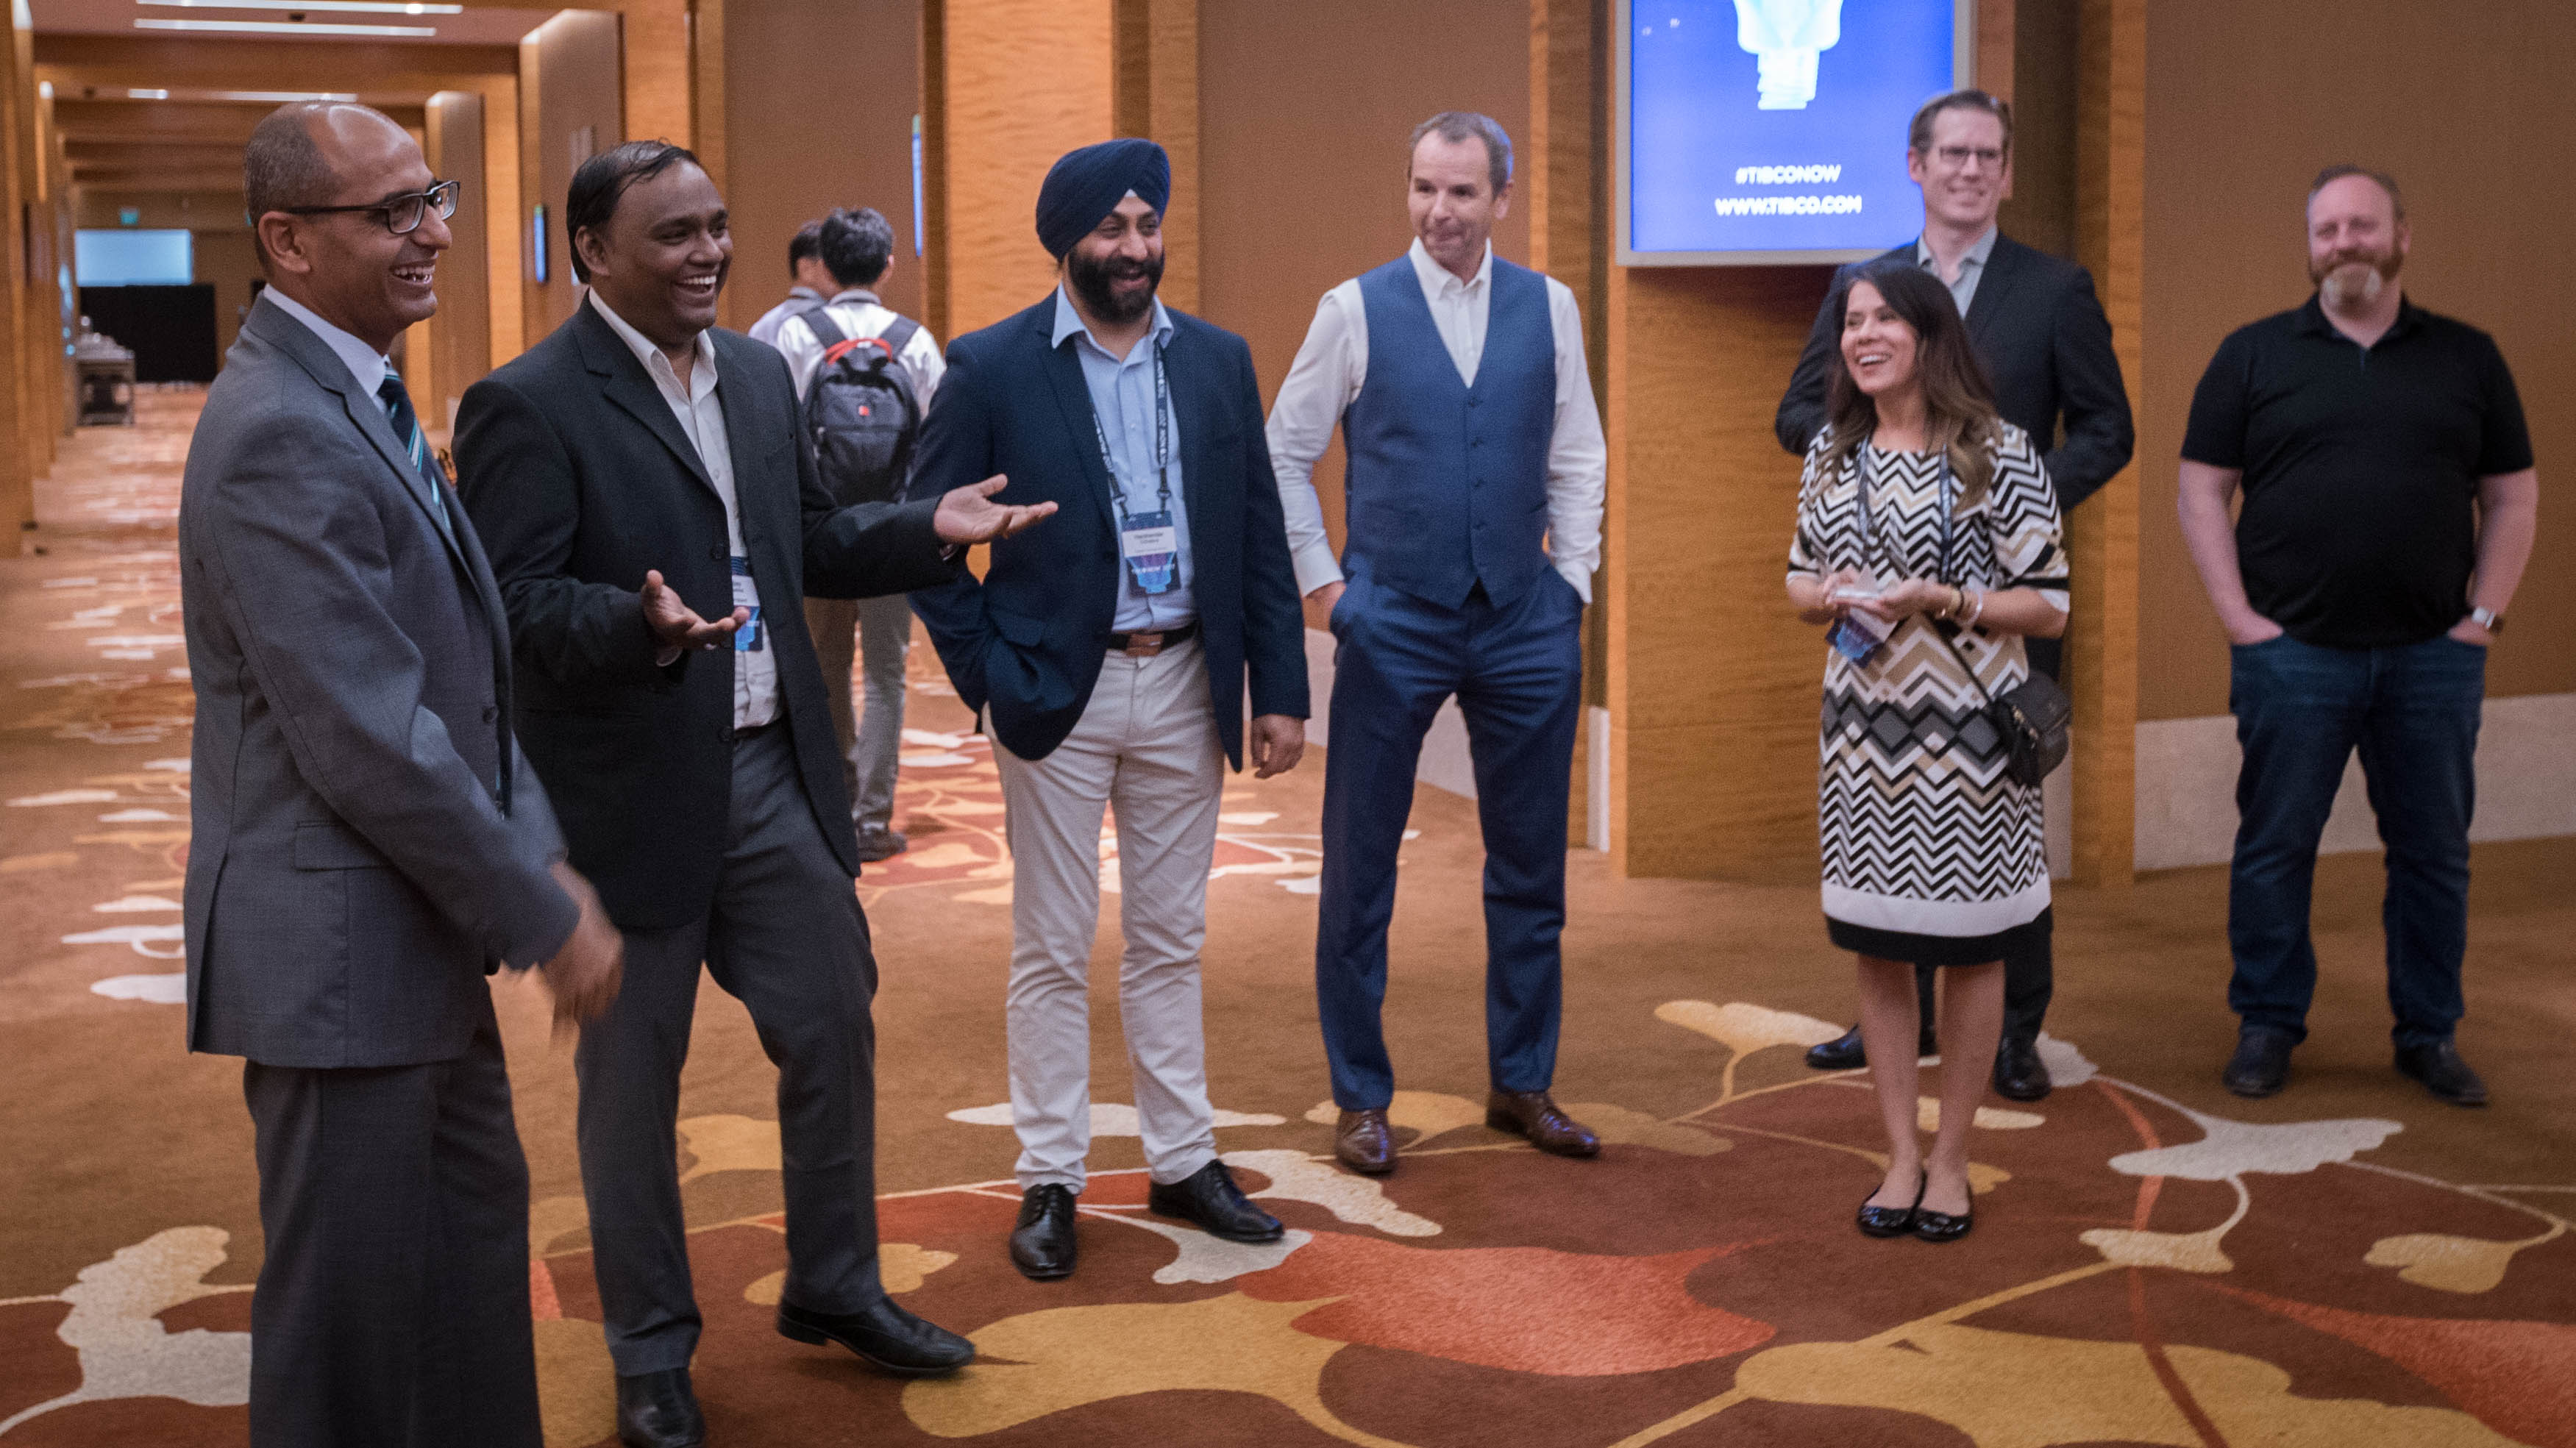 SIngapore TIBCO NOW Camera 2 4 TIBCO NOW Singapore—Event Roundup